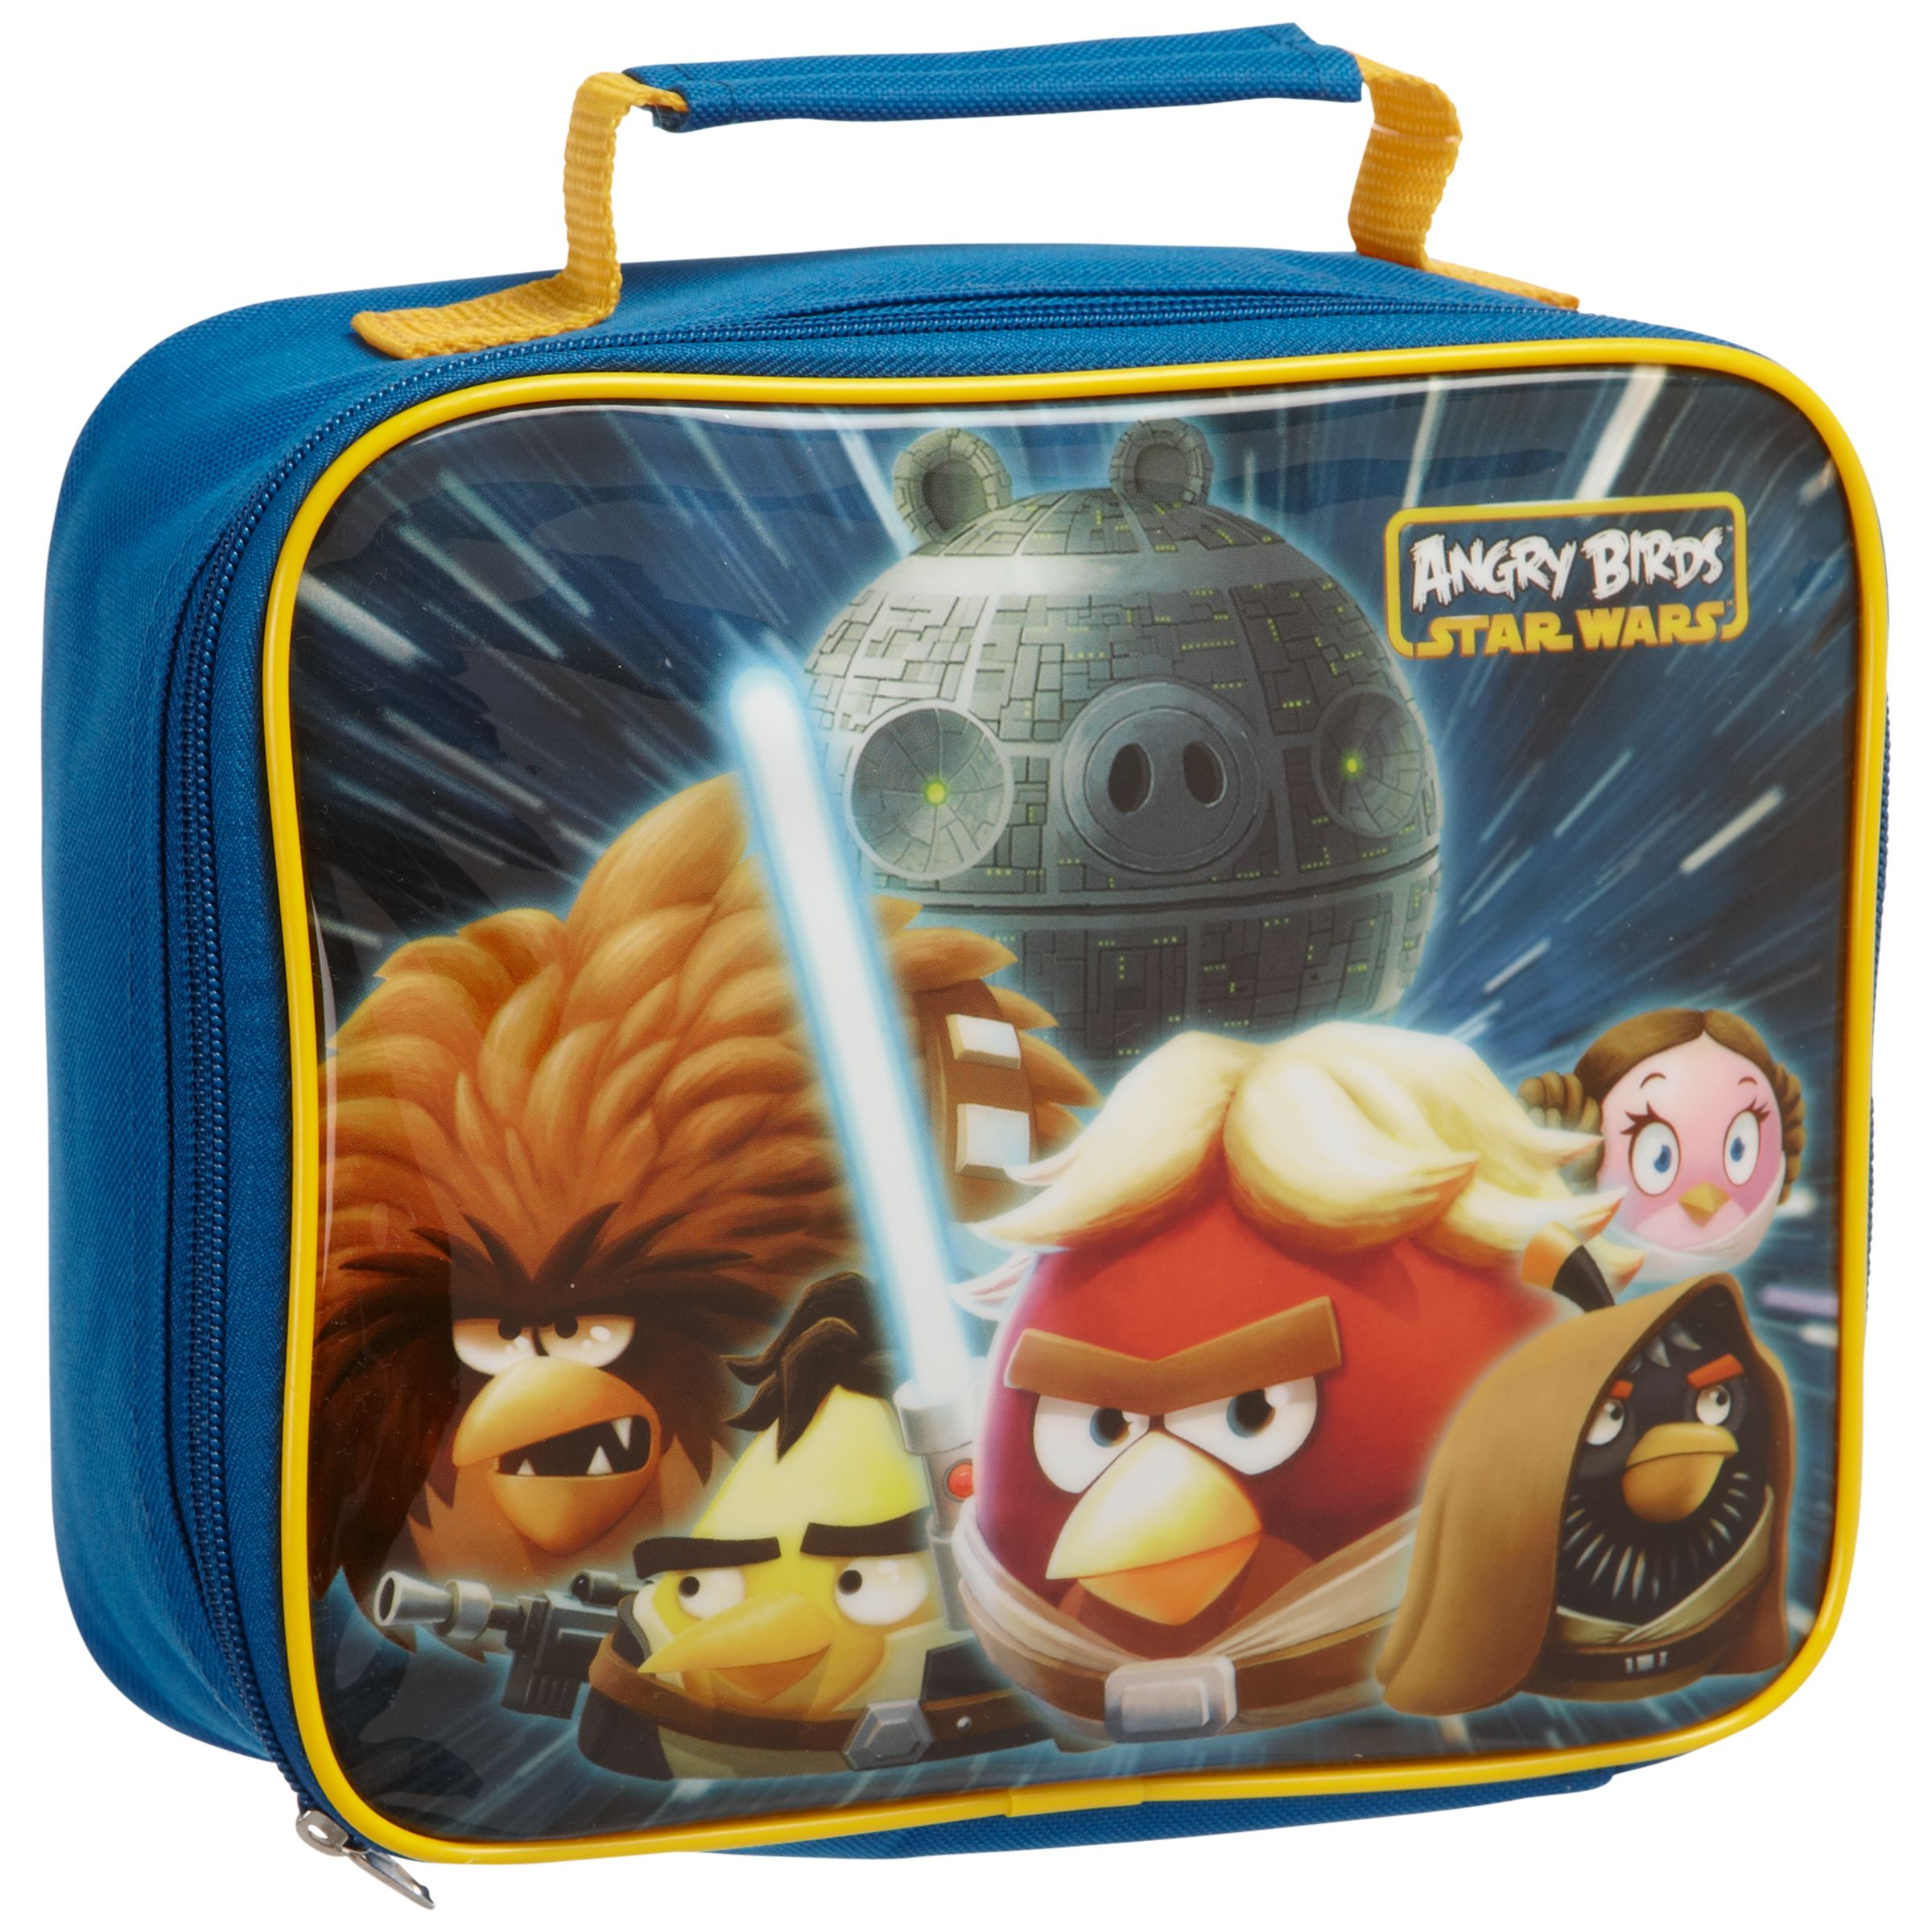 Speakmark Angry Birds Star Wars Lunch Bag